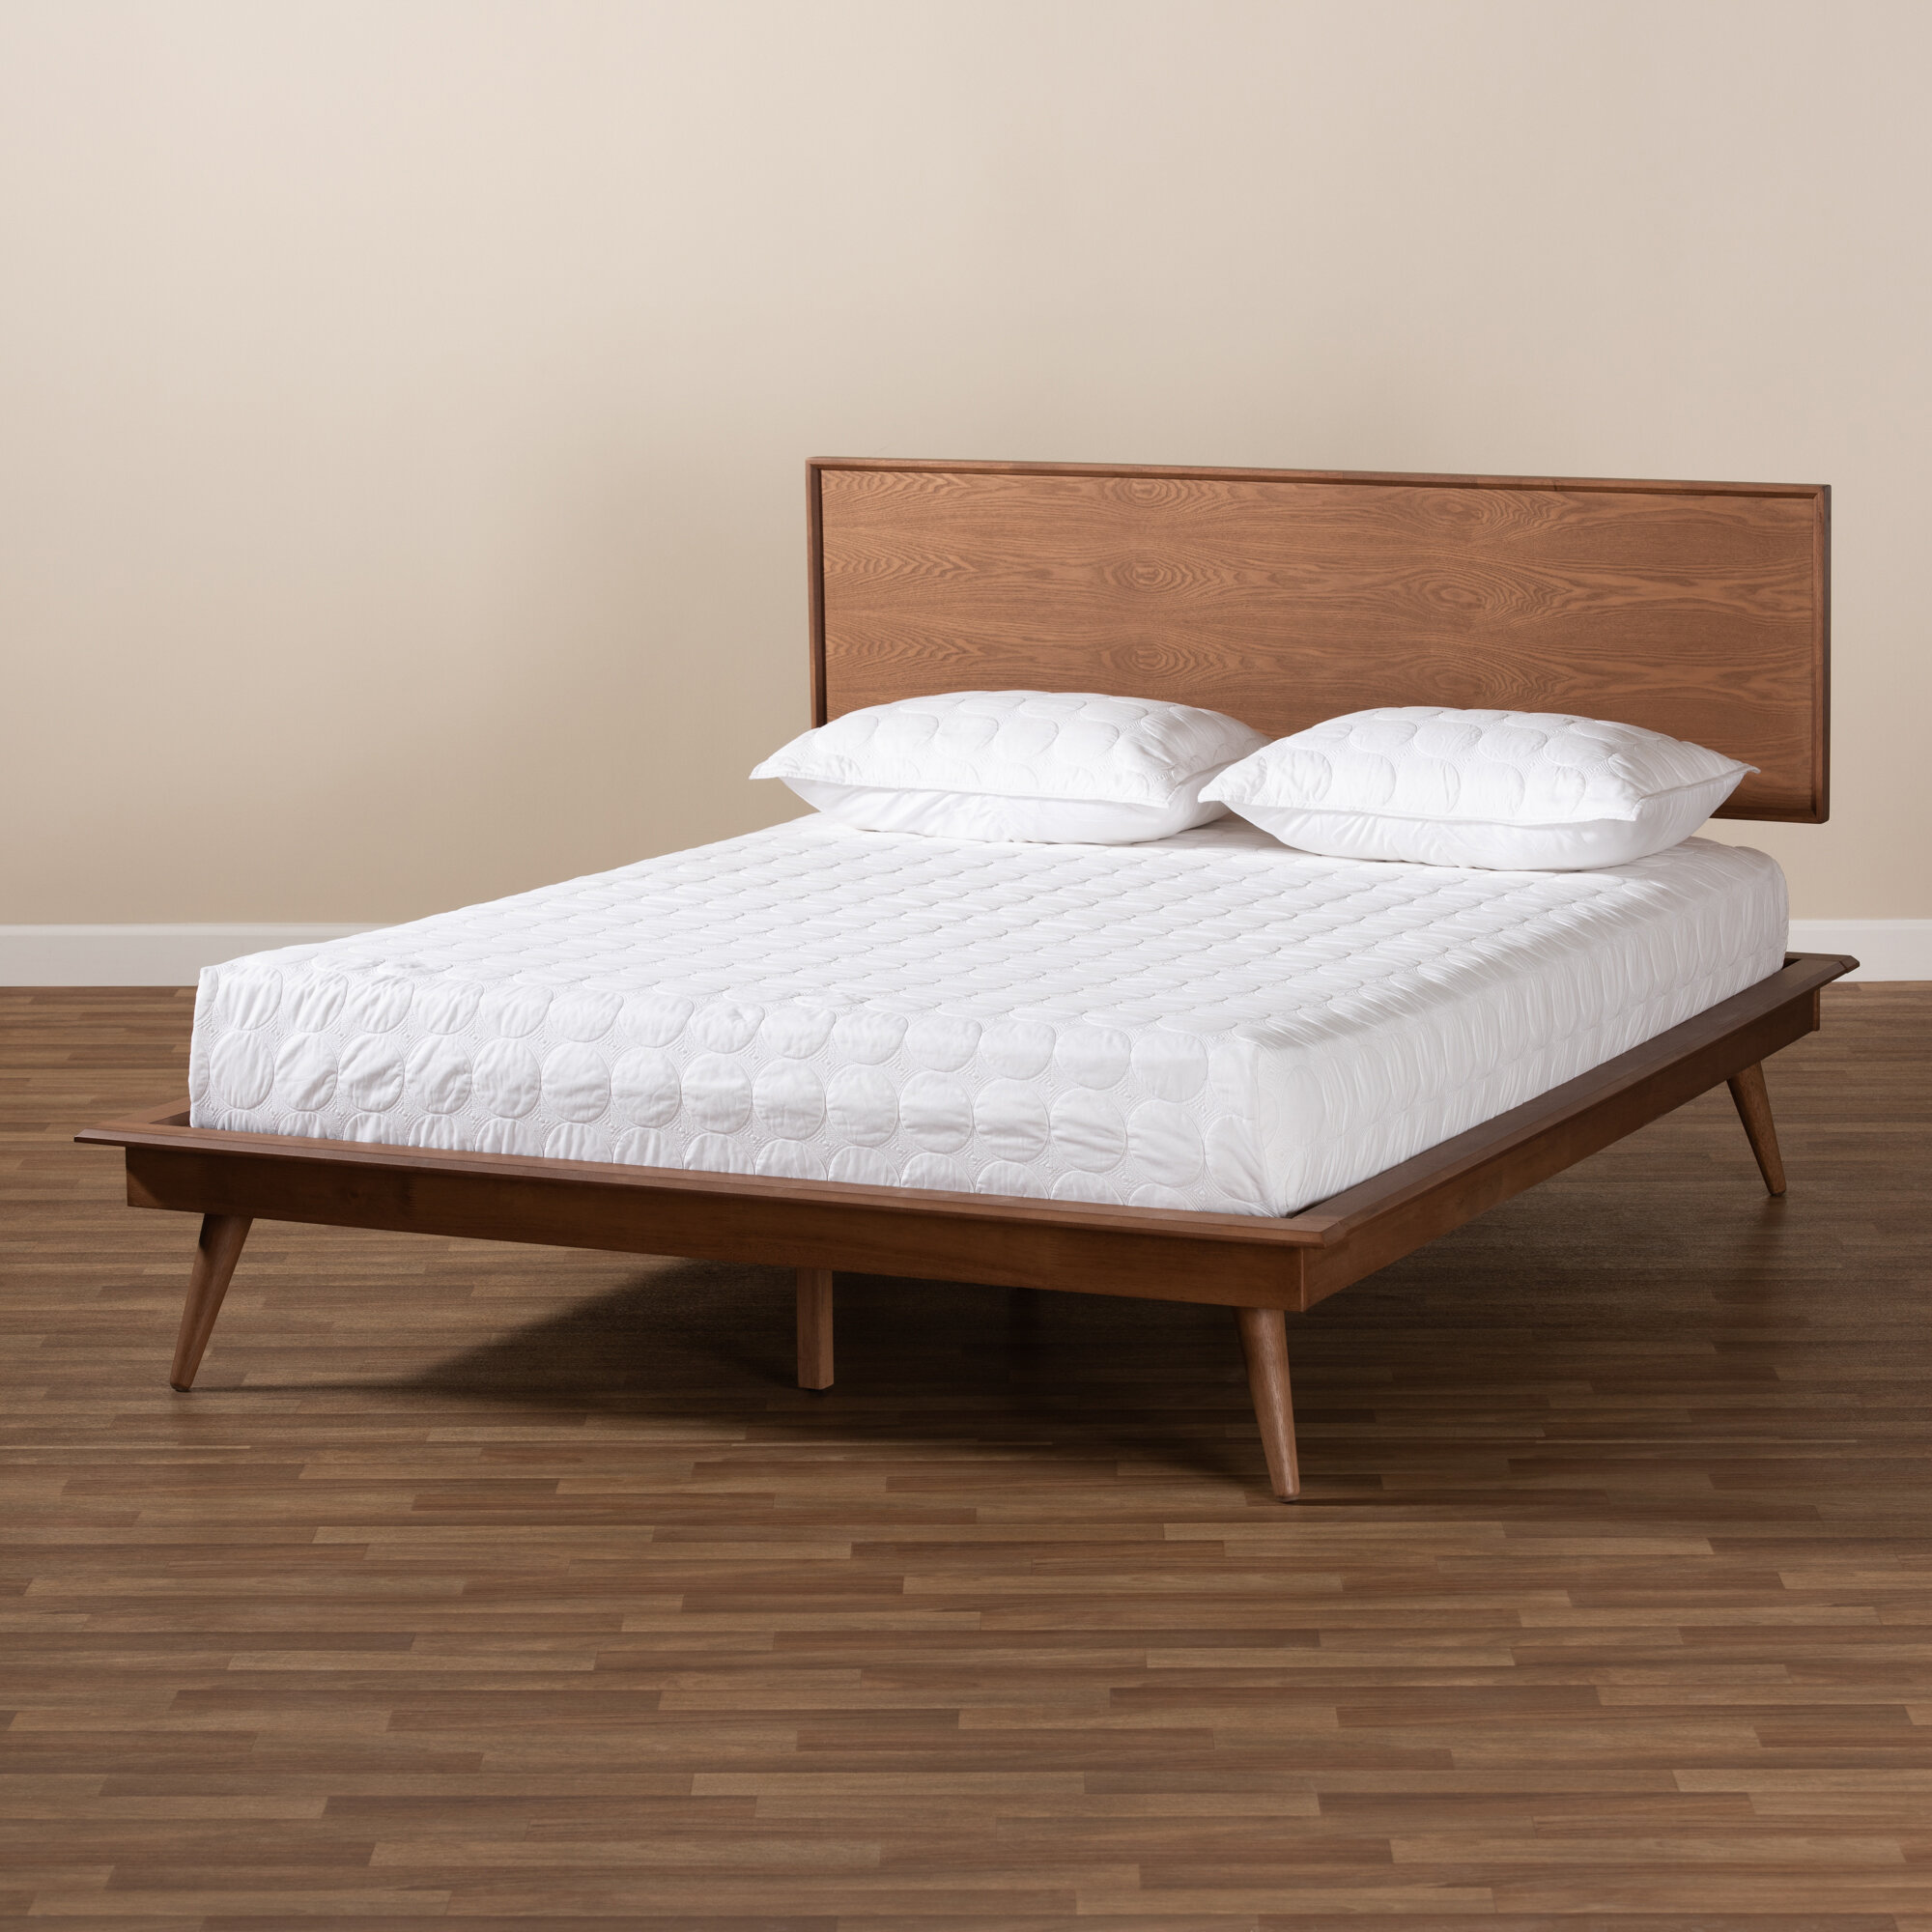 George Oliver Collett Mid Century Modern Platform Bed Reviews